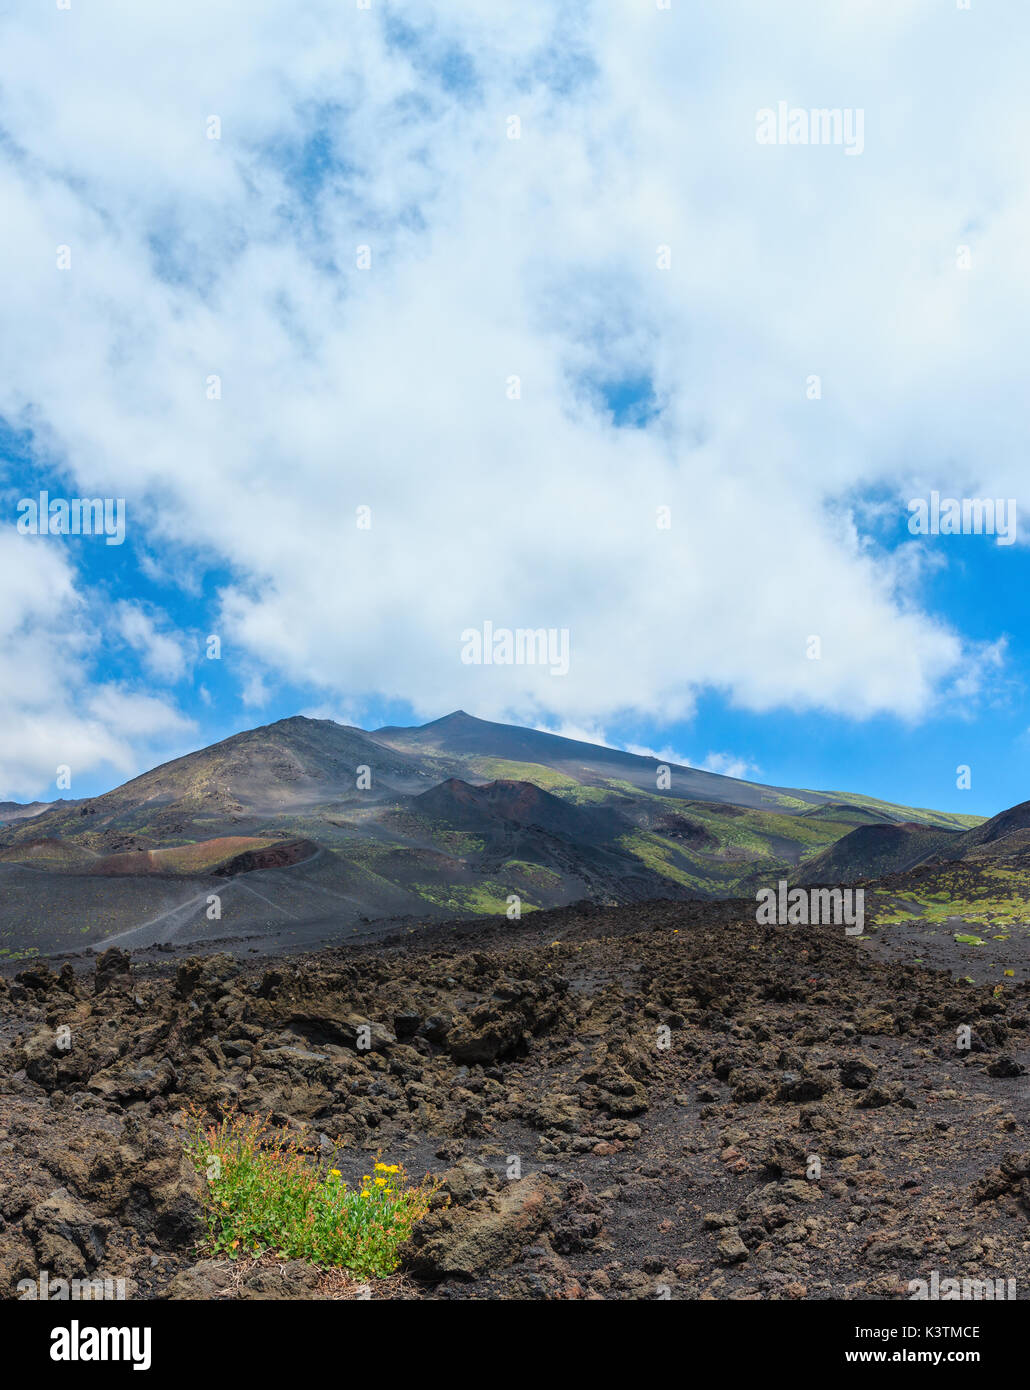 Yellow flowers on stony magma fields between summer Etna volcano mountain craters, Sicily, Italy. - Stock Image